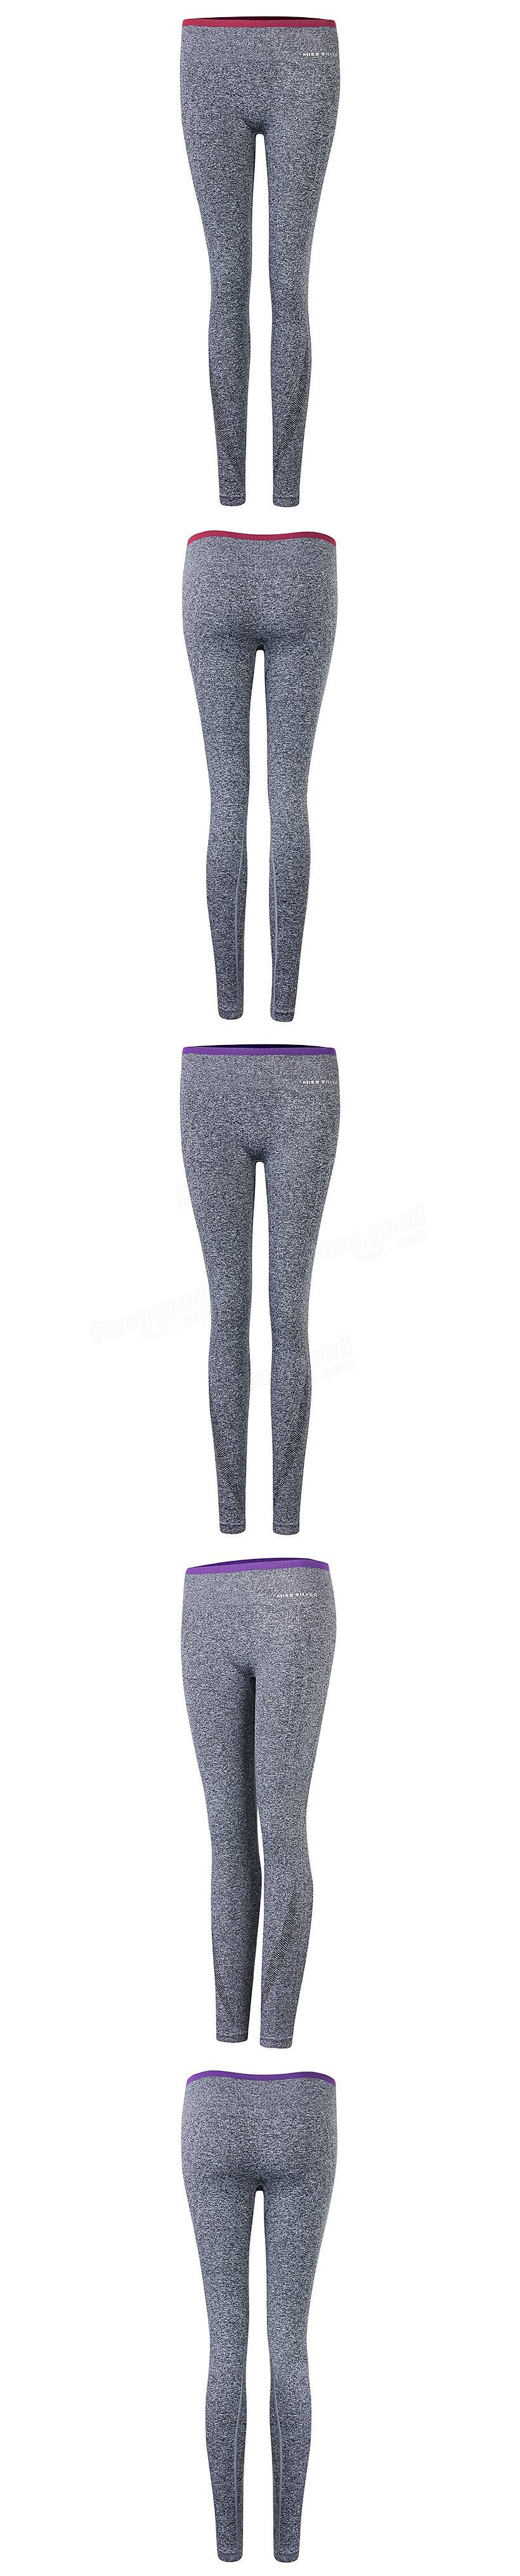 Women Yoga Leggings Sports Elastic Slimming Tights Gym Running Pants Fitness Trousers